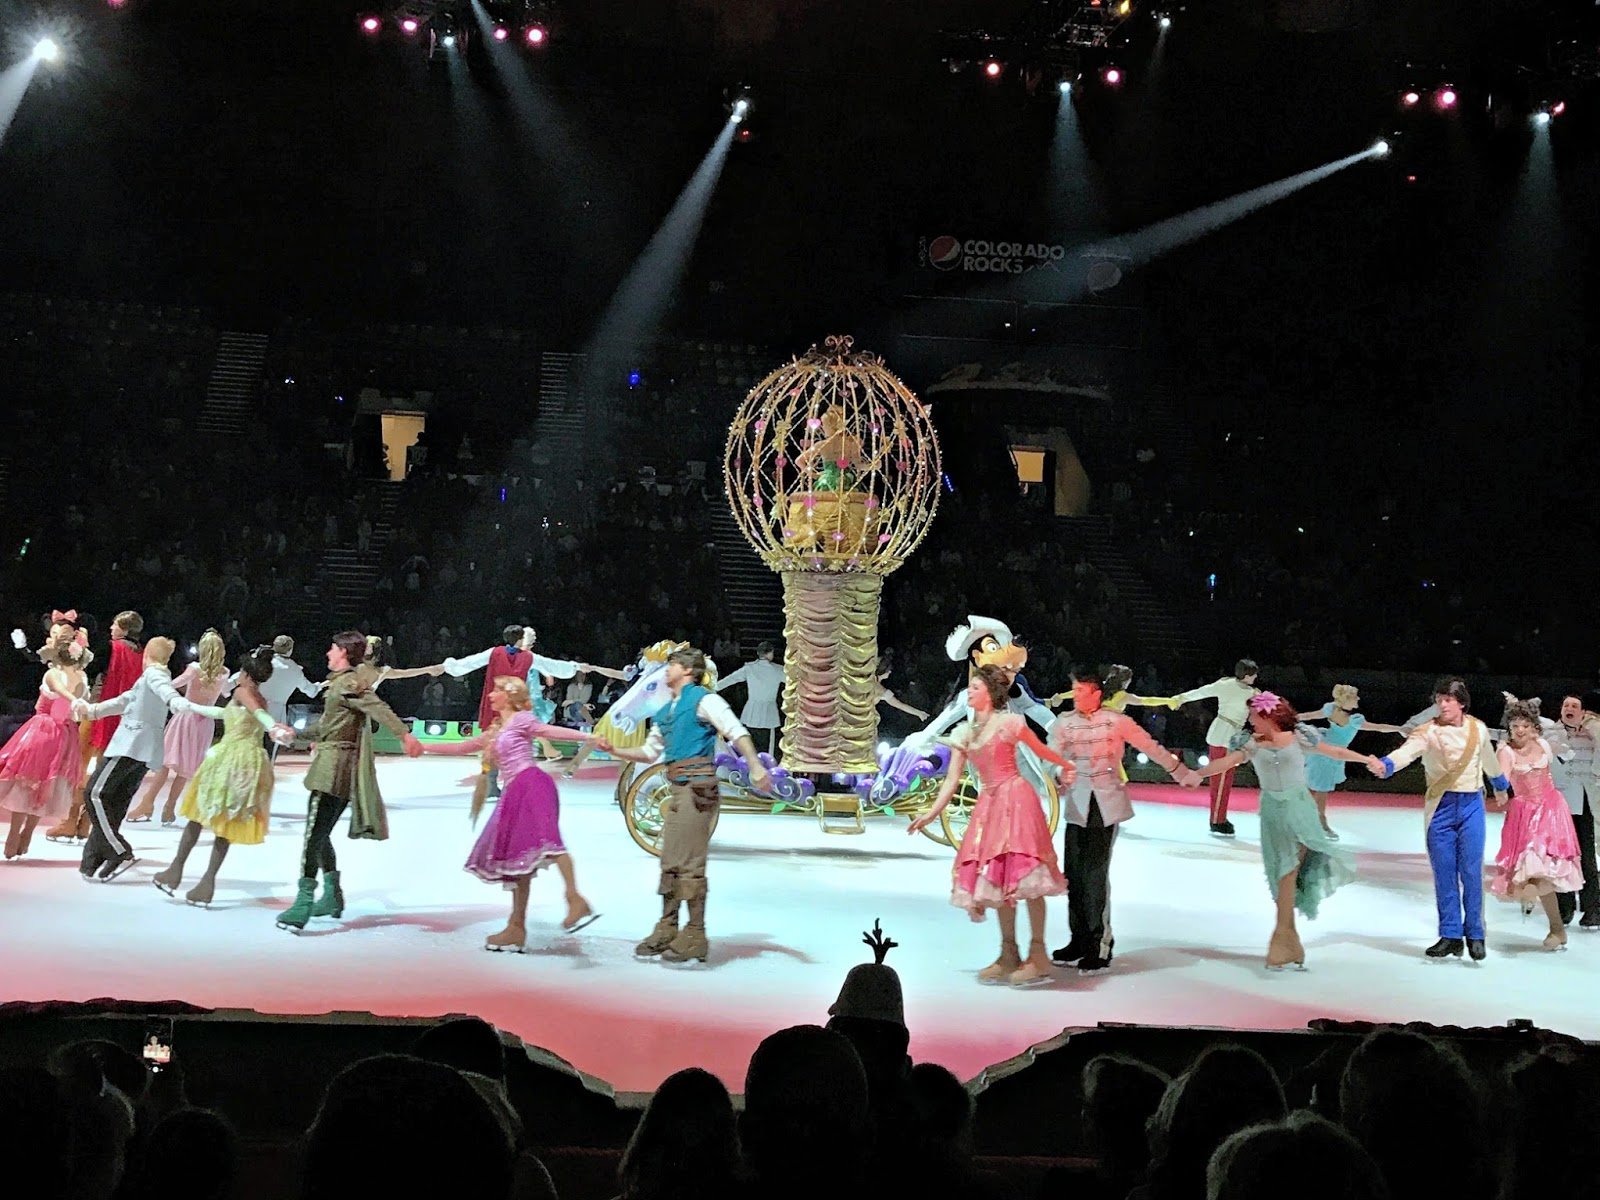 Disney On Ice tickets. Buy and sell Disney On Ice tickets and other Theater tickets on StubHub! Buy your Disney On Ice show ticket today.